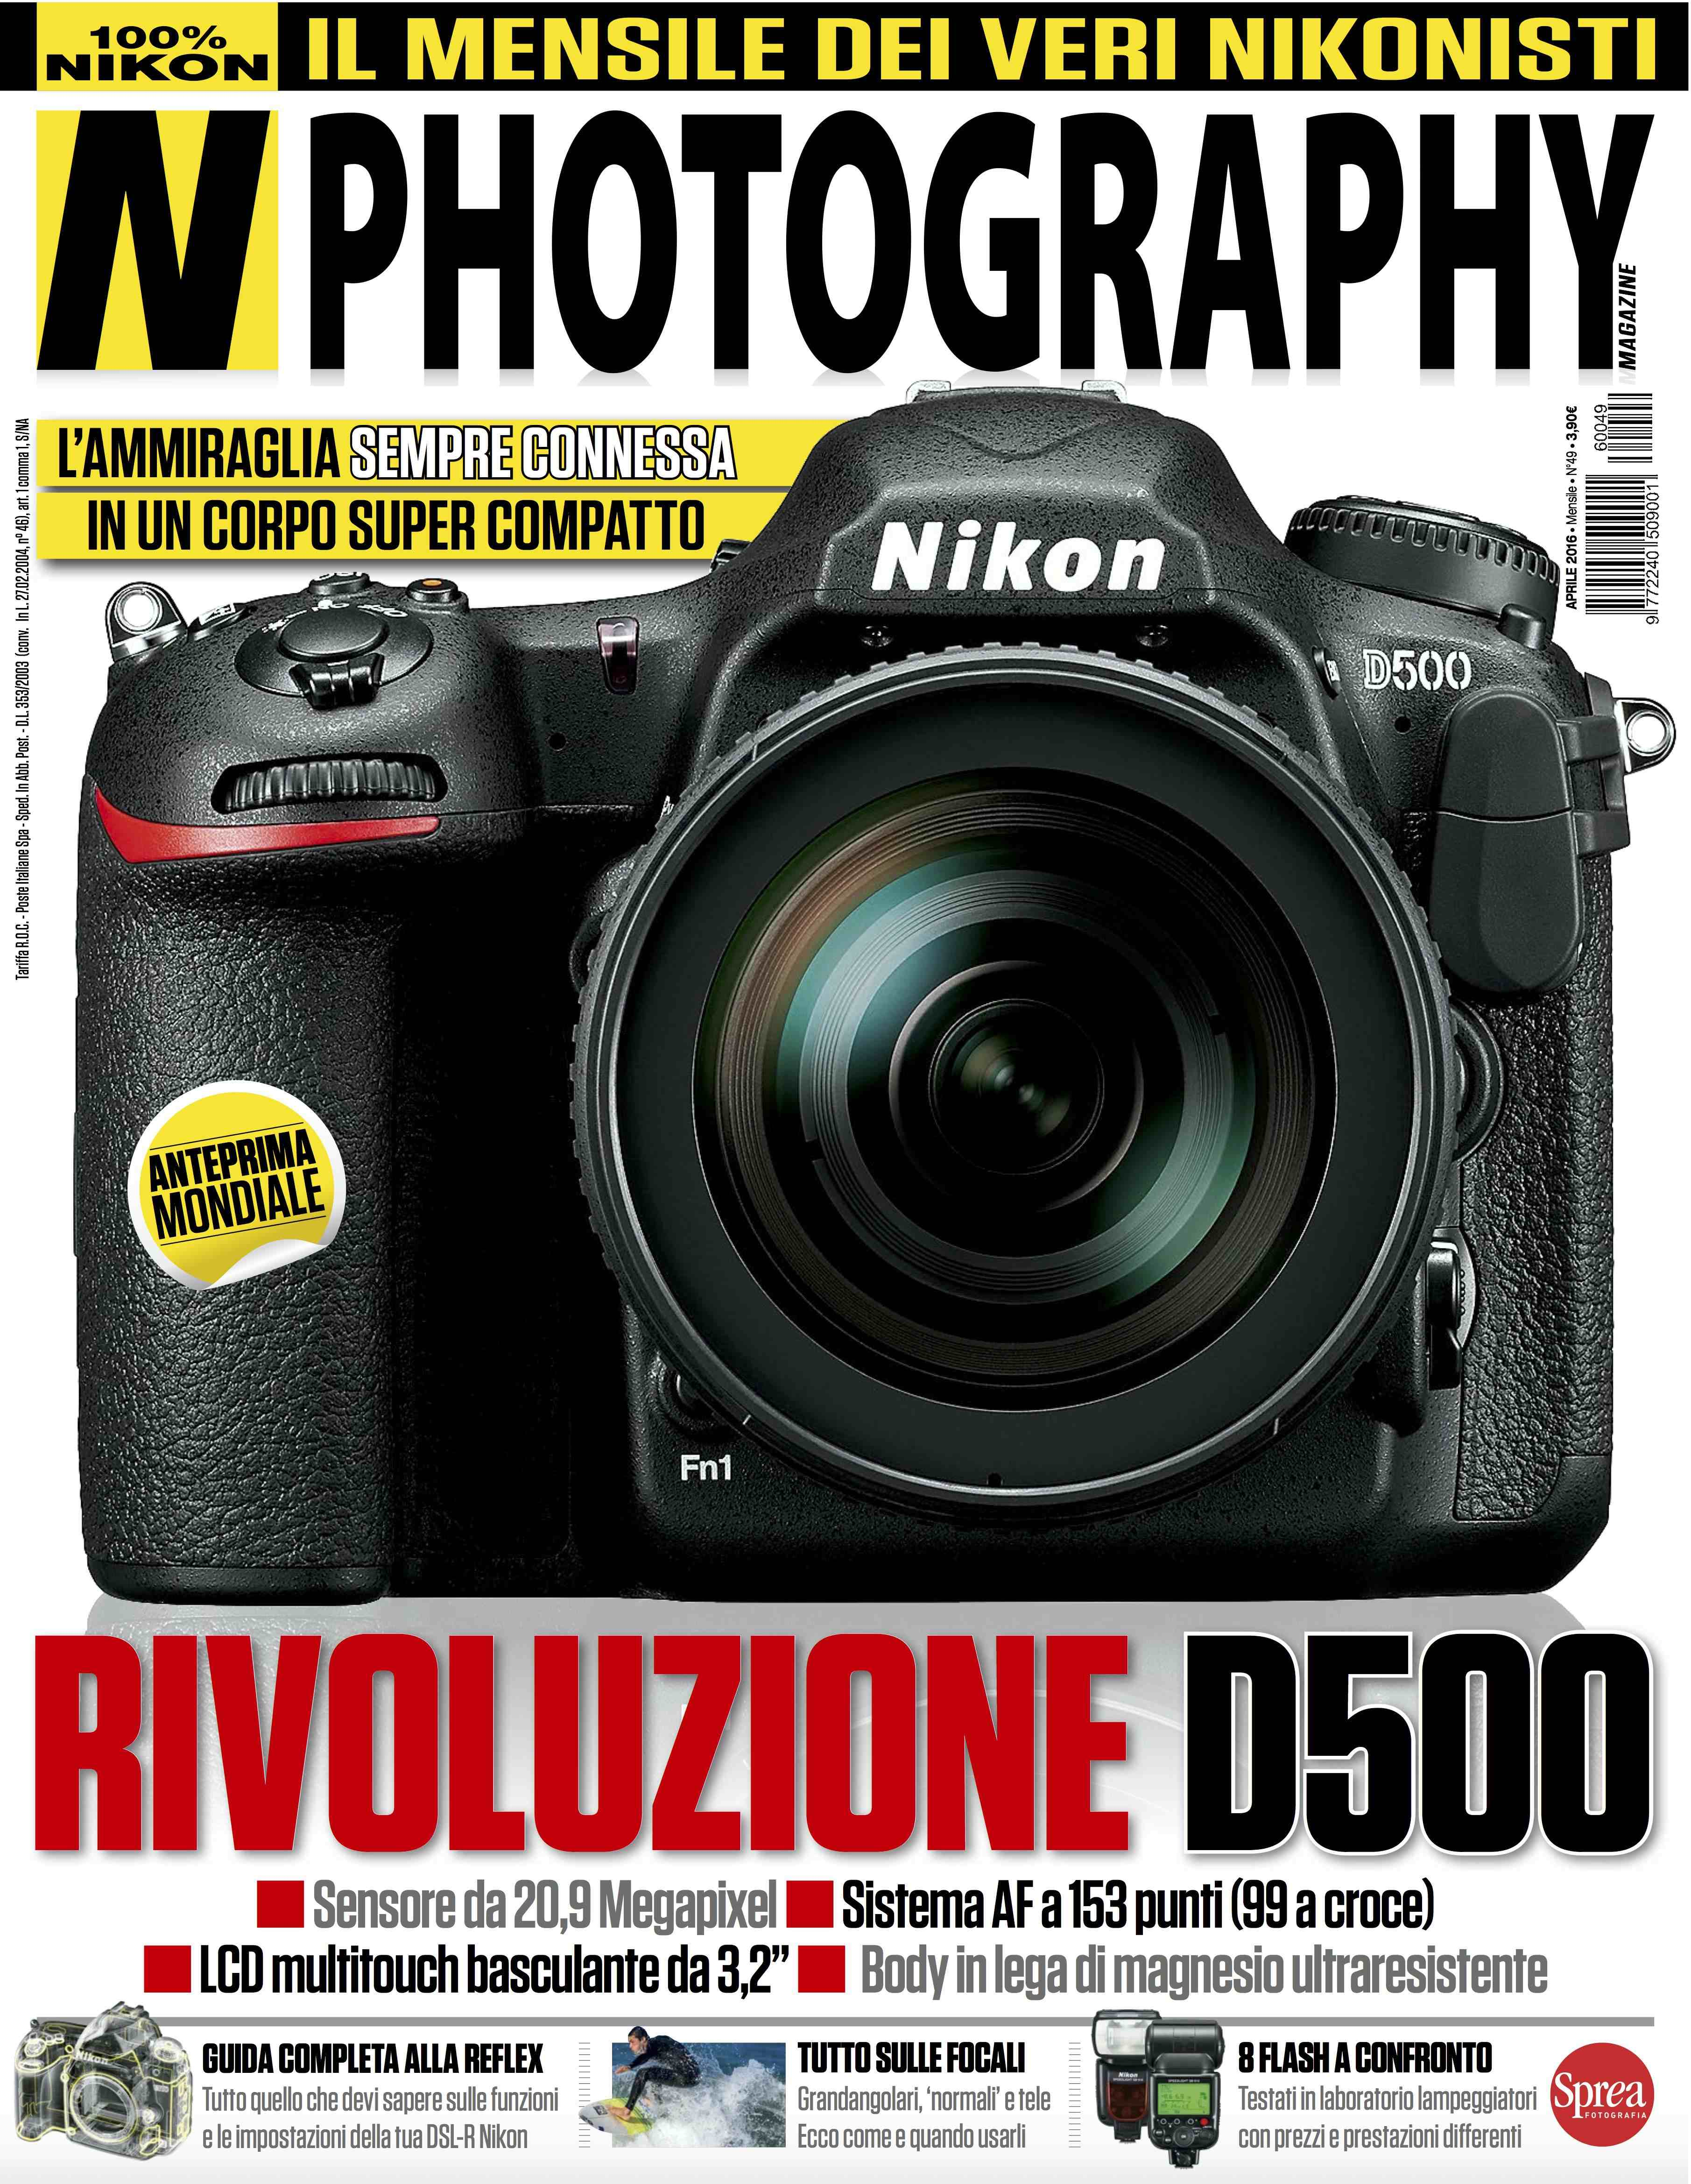 N Photography - 49 APRILE 2016 (trascinato)